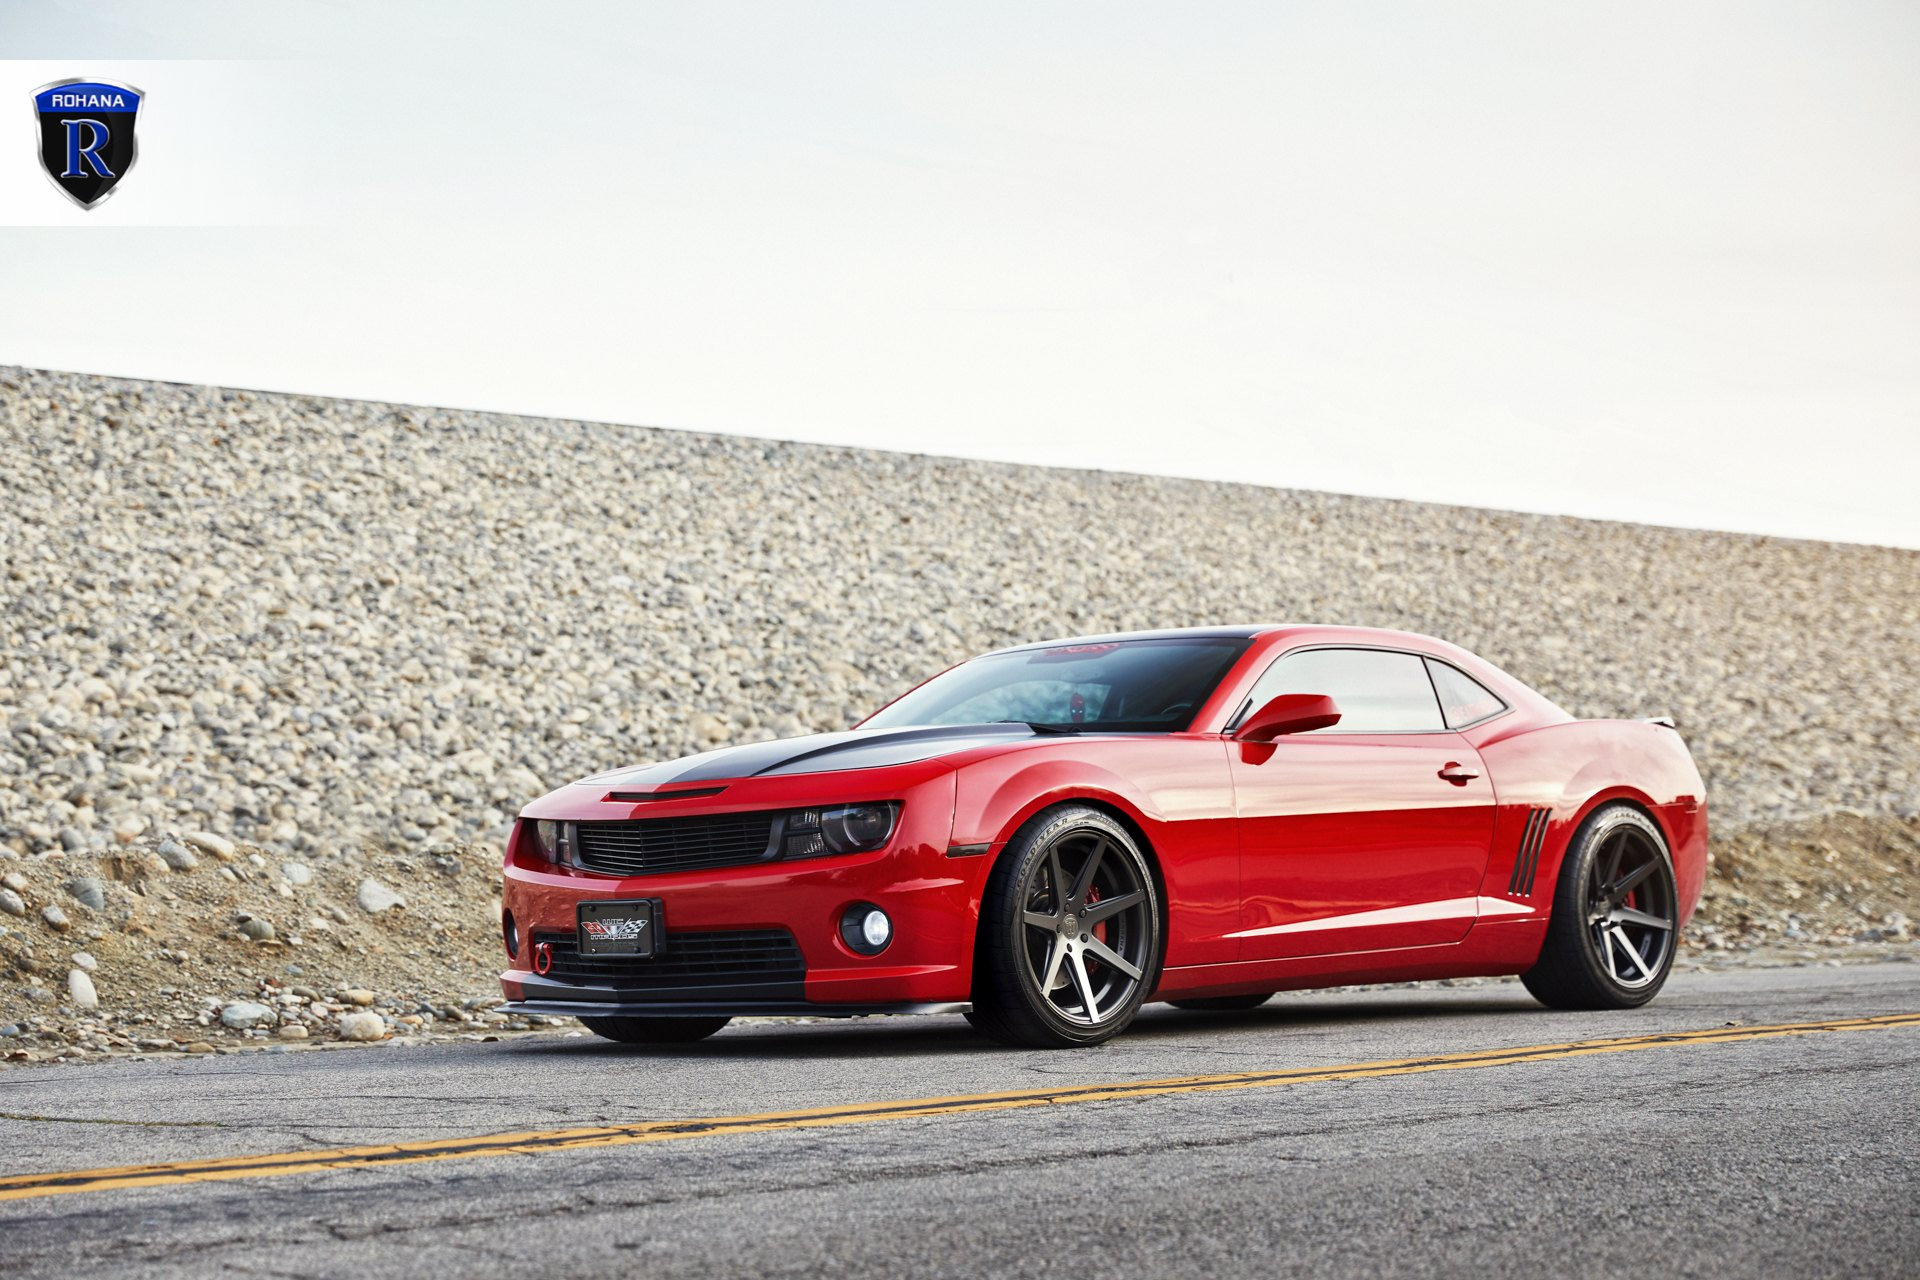 Aftermarket Hood on Red Chevy Camaro - Photo by Rohana Wheels